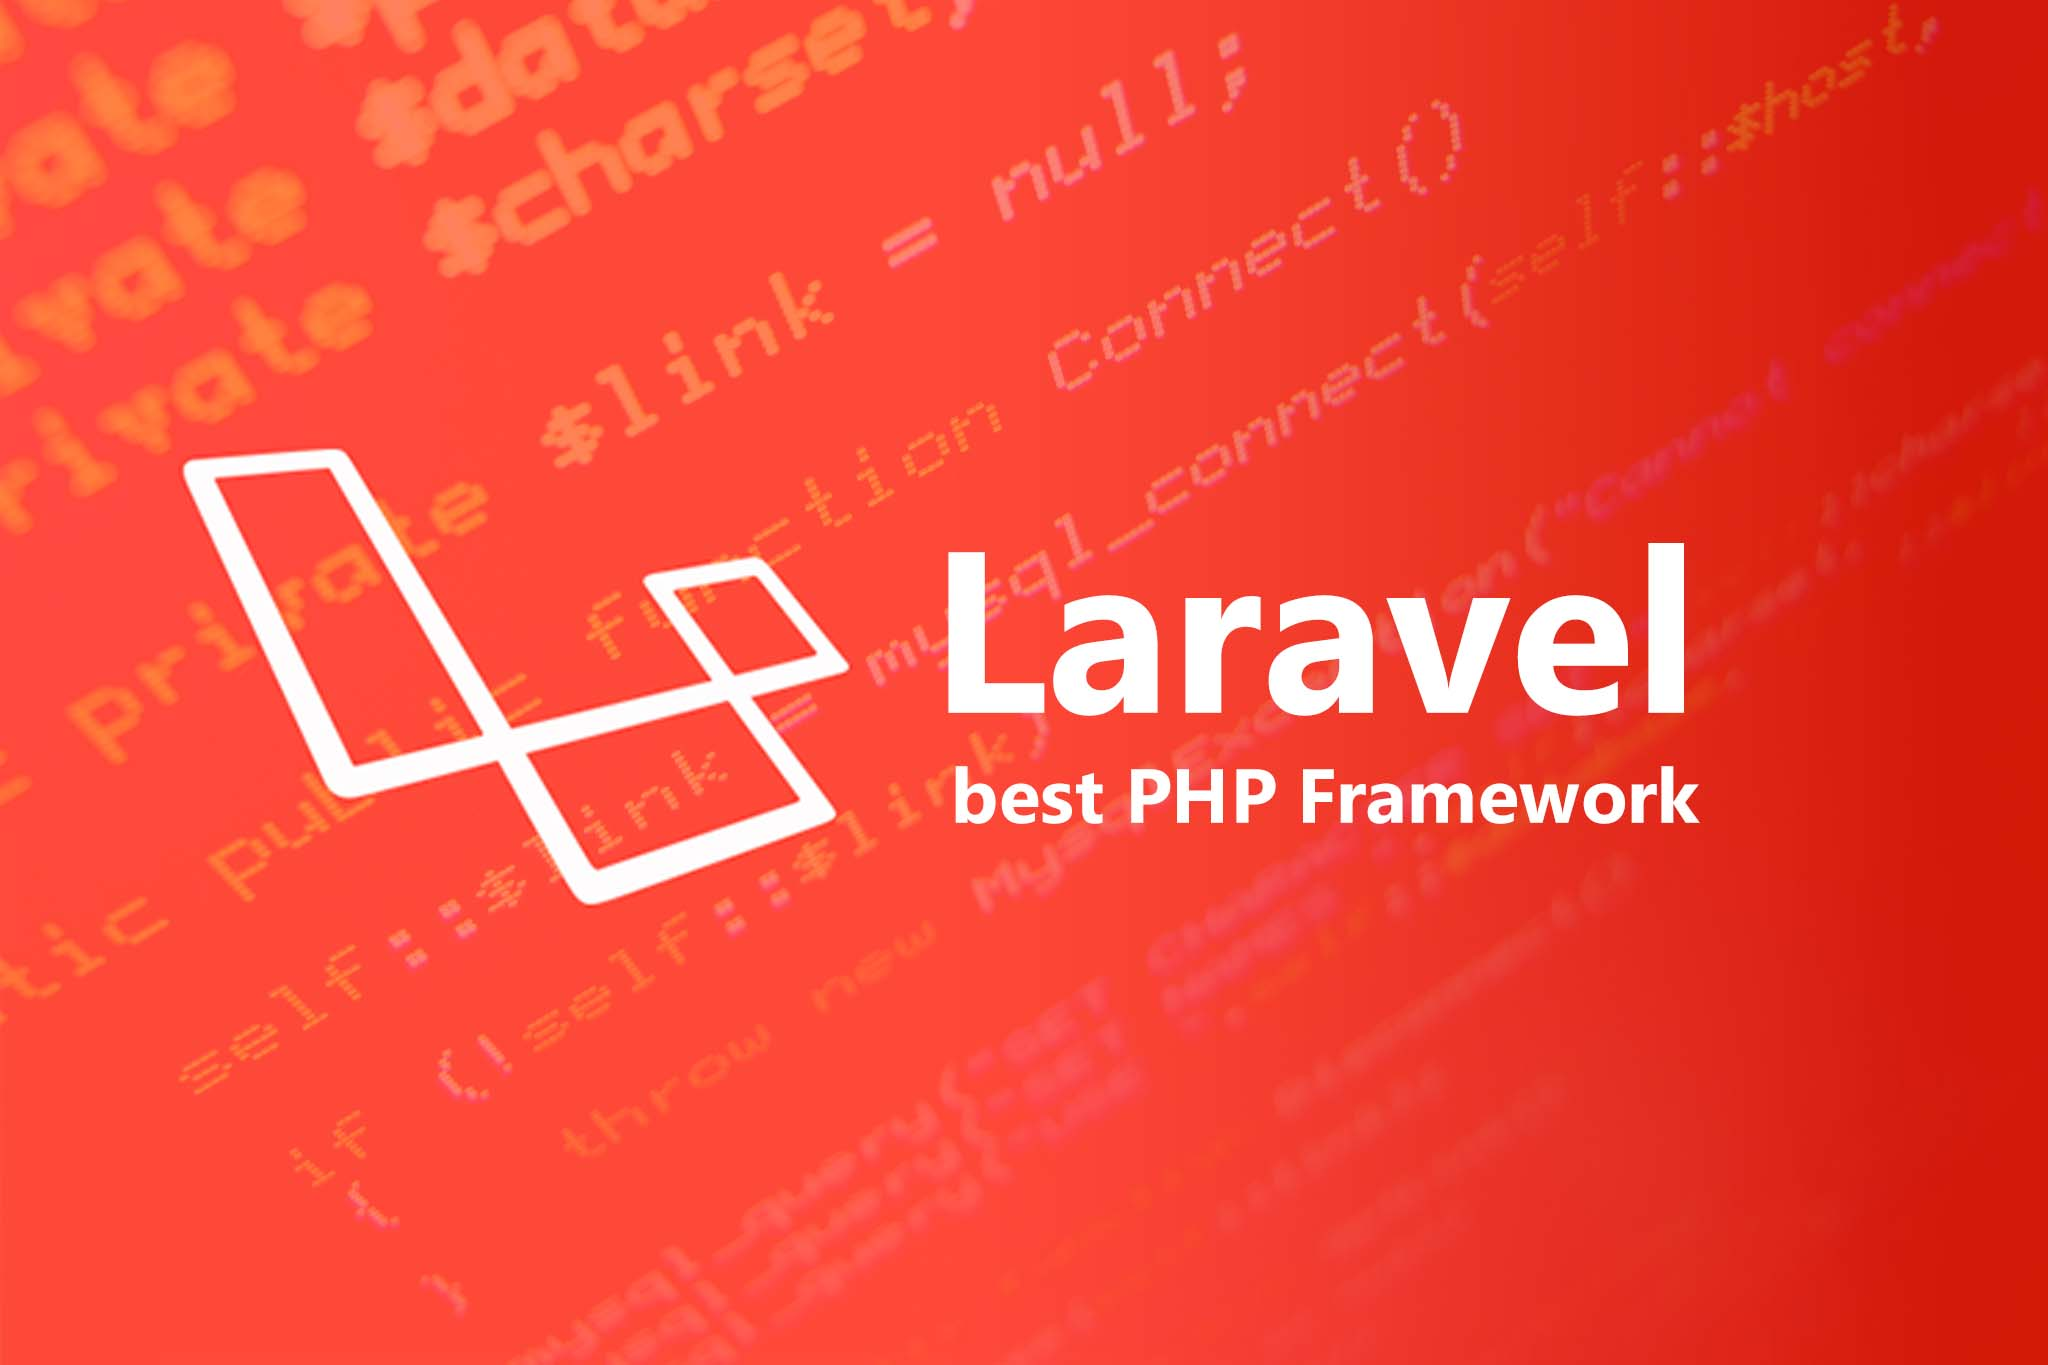 The Best PHP Framework 2015 - And the Winner Is!